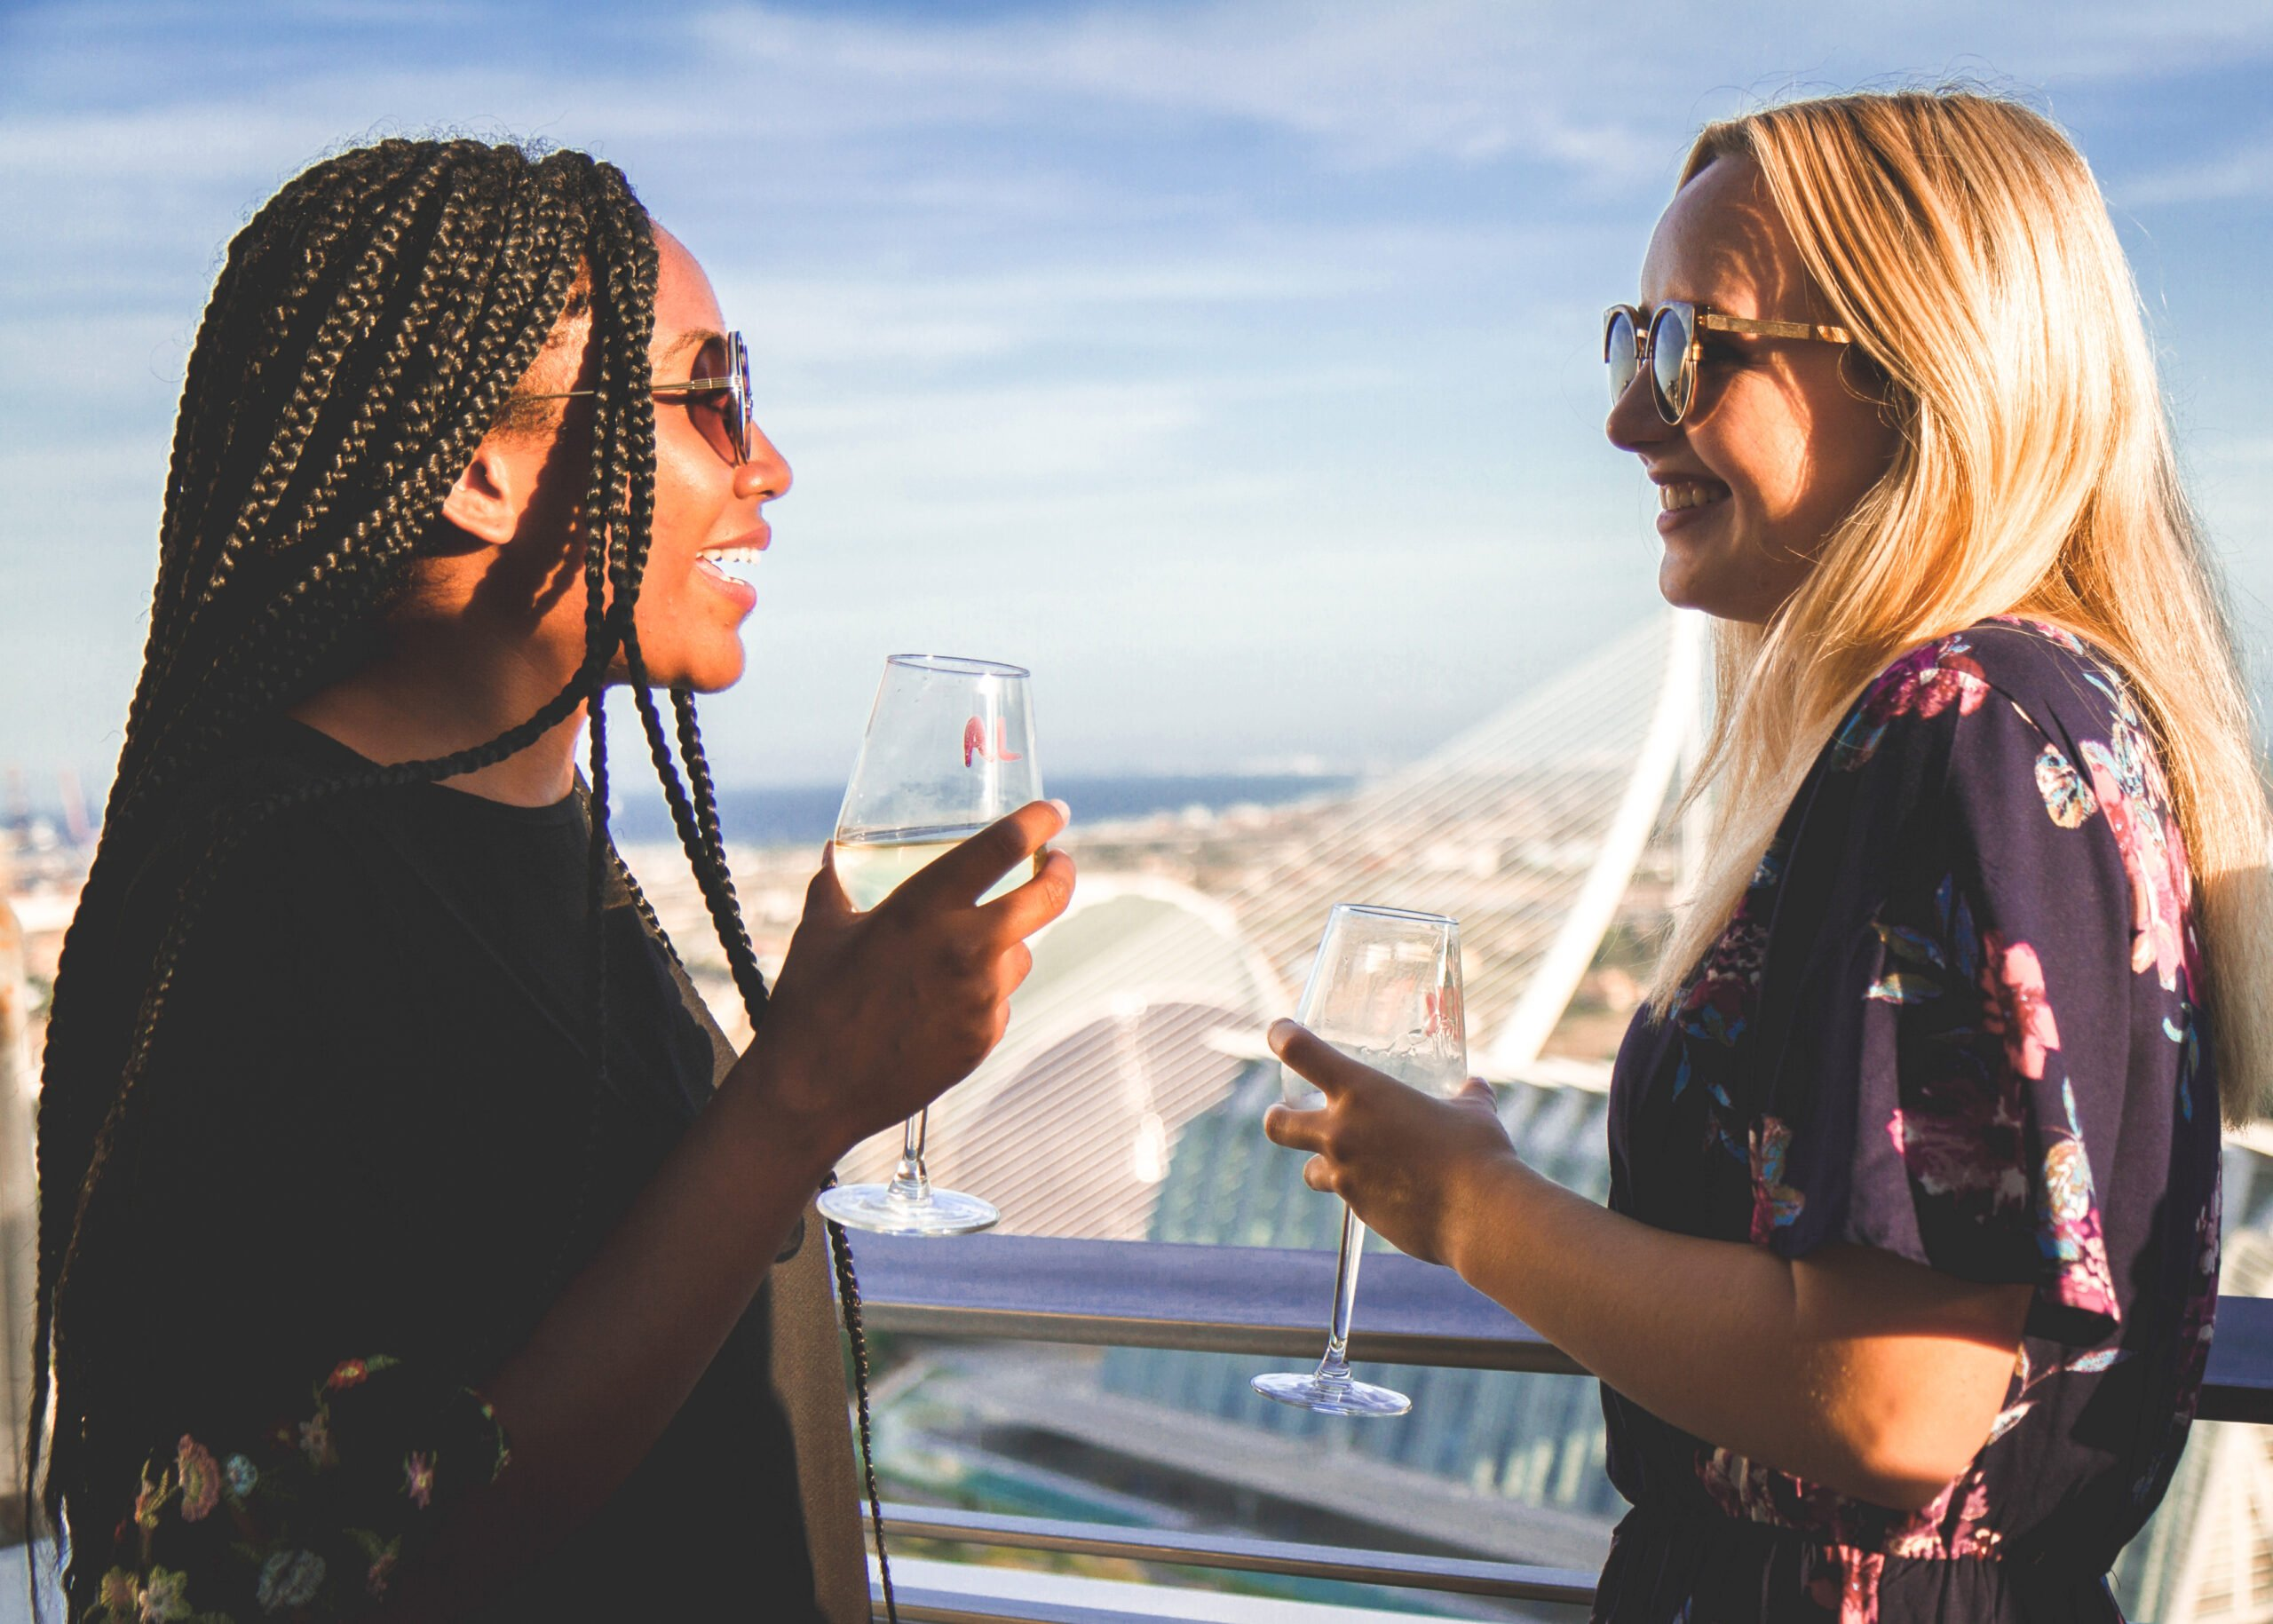 Learn The Storytelling Behind The Innovative Designs In Our Valencia City Of Arts & Sciences Tour With Rooftop Wine Tasting And Tapas